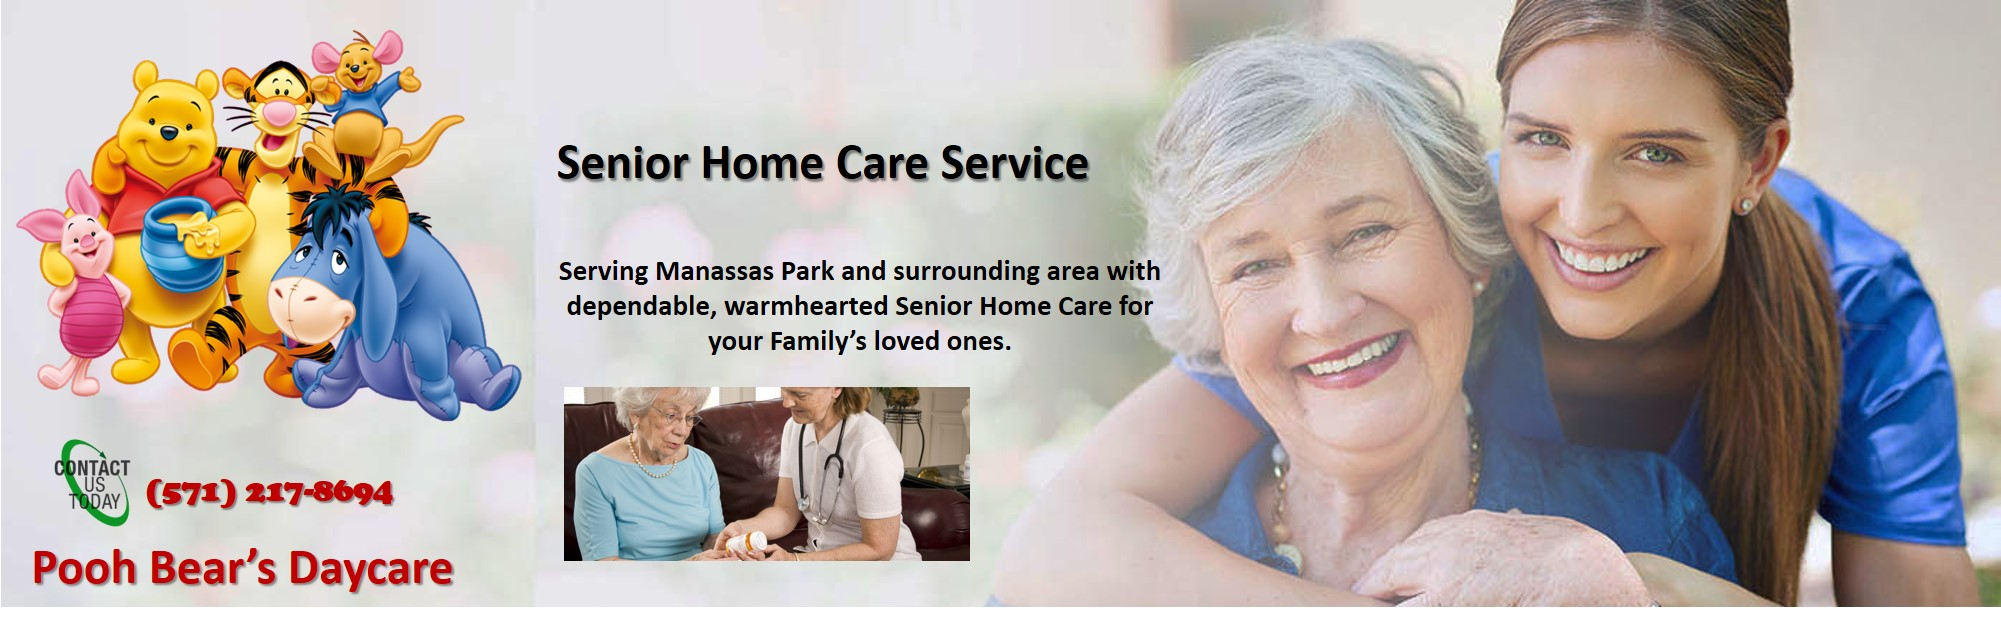 Home Care Service Senior Home Care Services Pooh Bear S Daycare Home Health Care